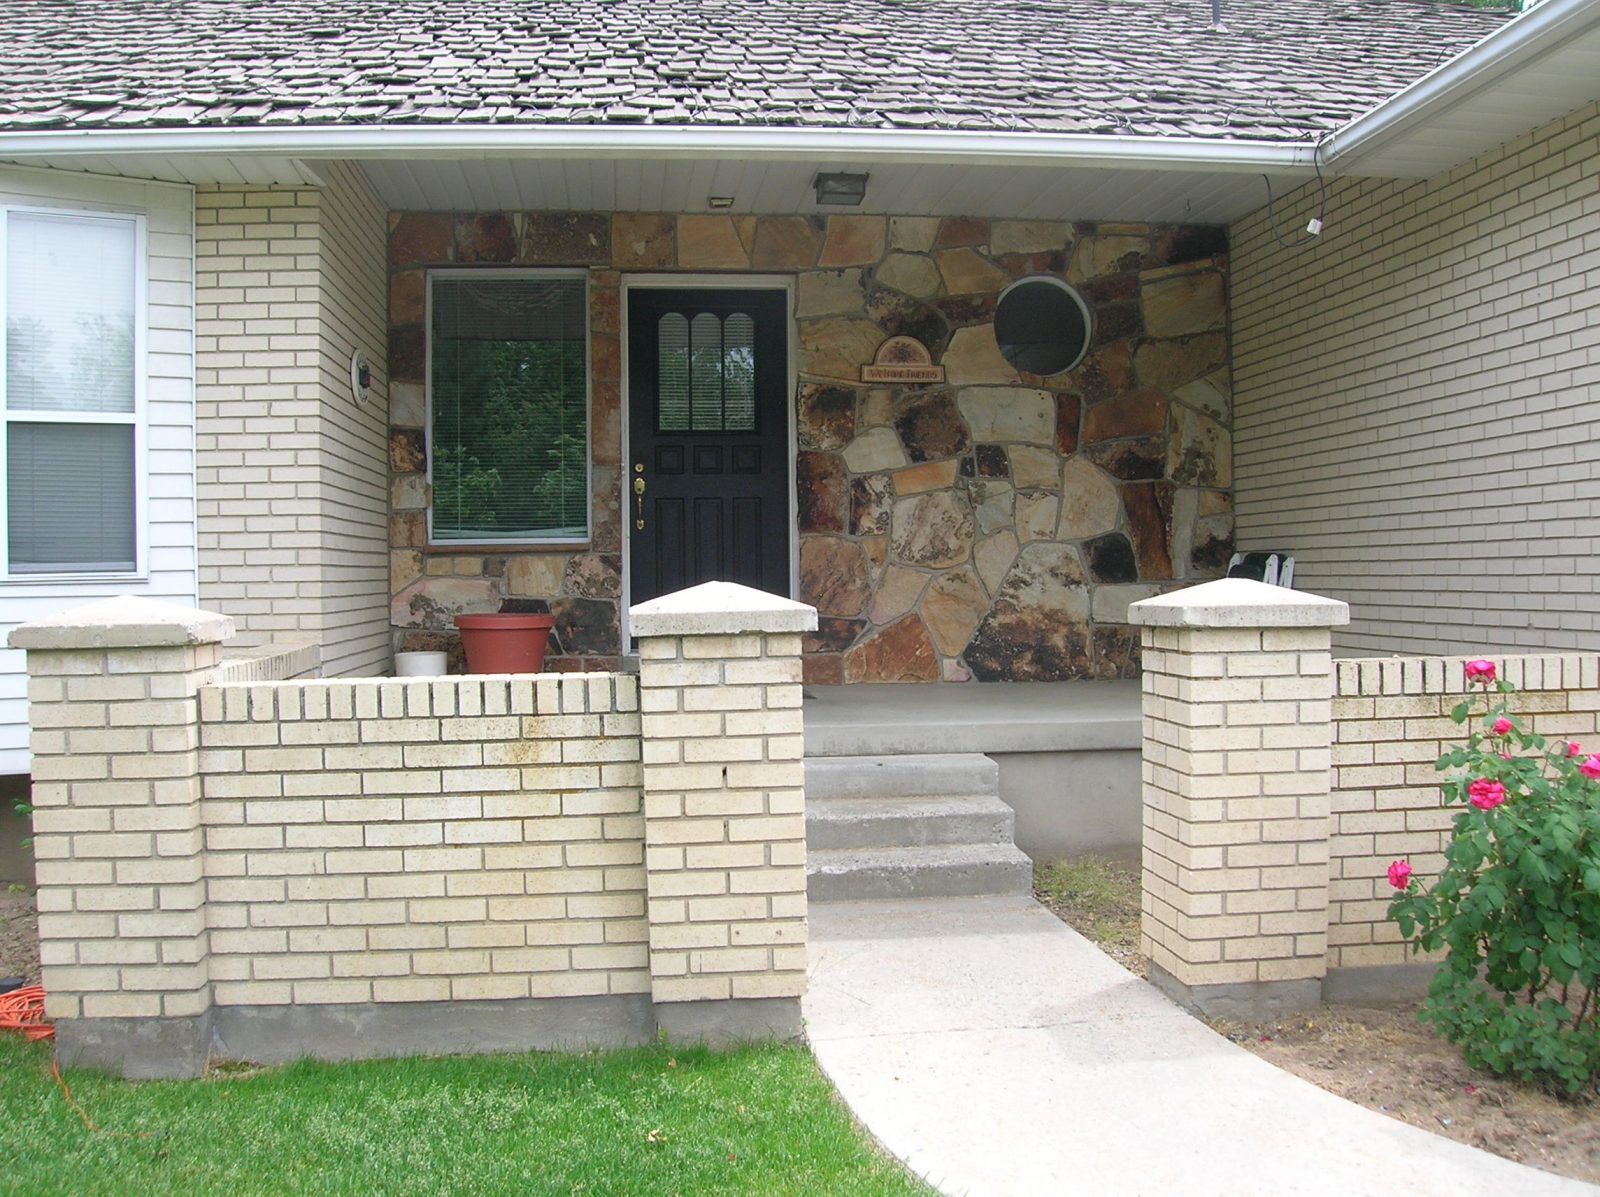 Cape Home Stone porch Before exterior remodel | Renovation Design Group